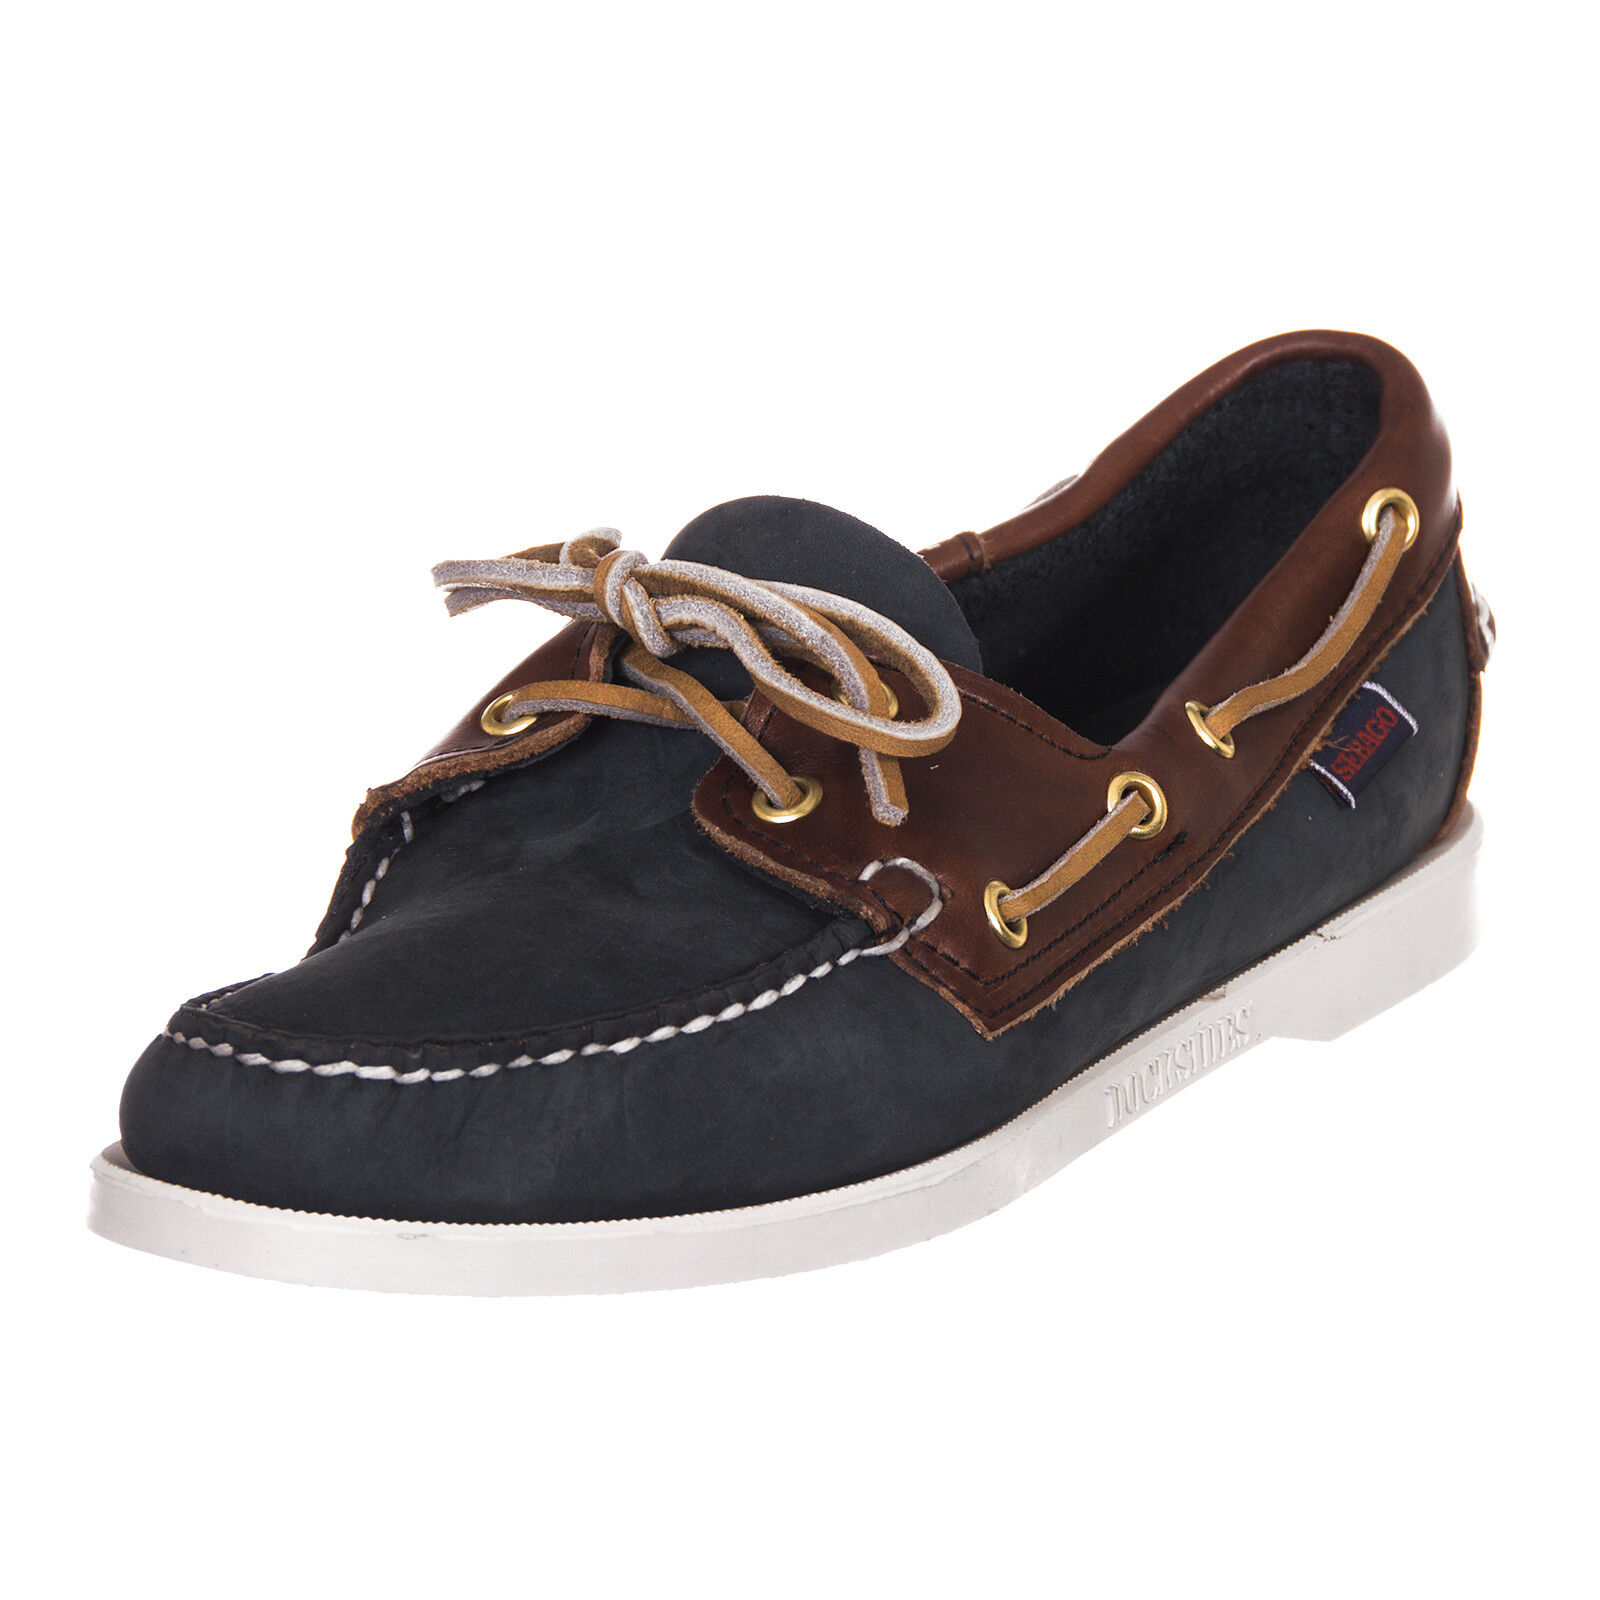 SEBAGO scarpa campionario shoes donna sample woman blu marrone N32 EU 40,5 - 453 N32 marrone ba75a1